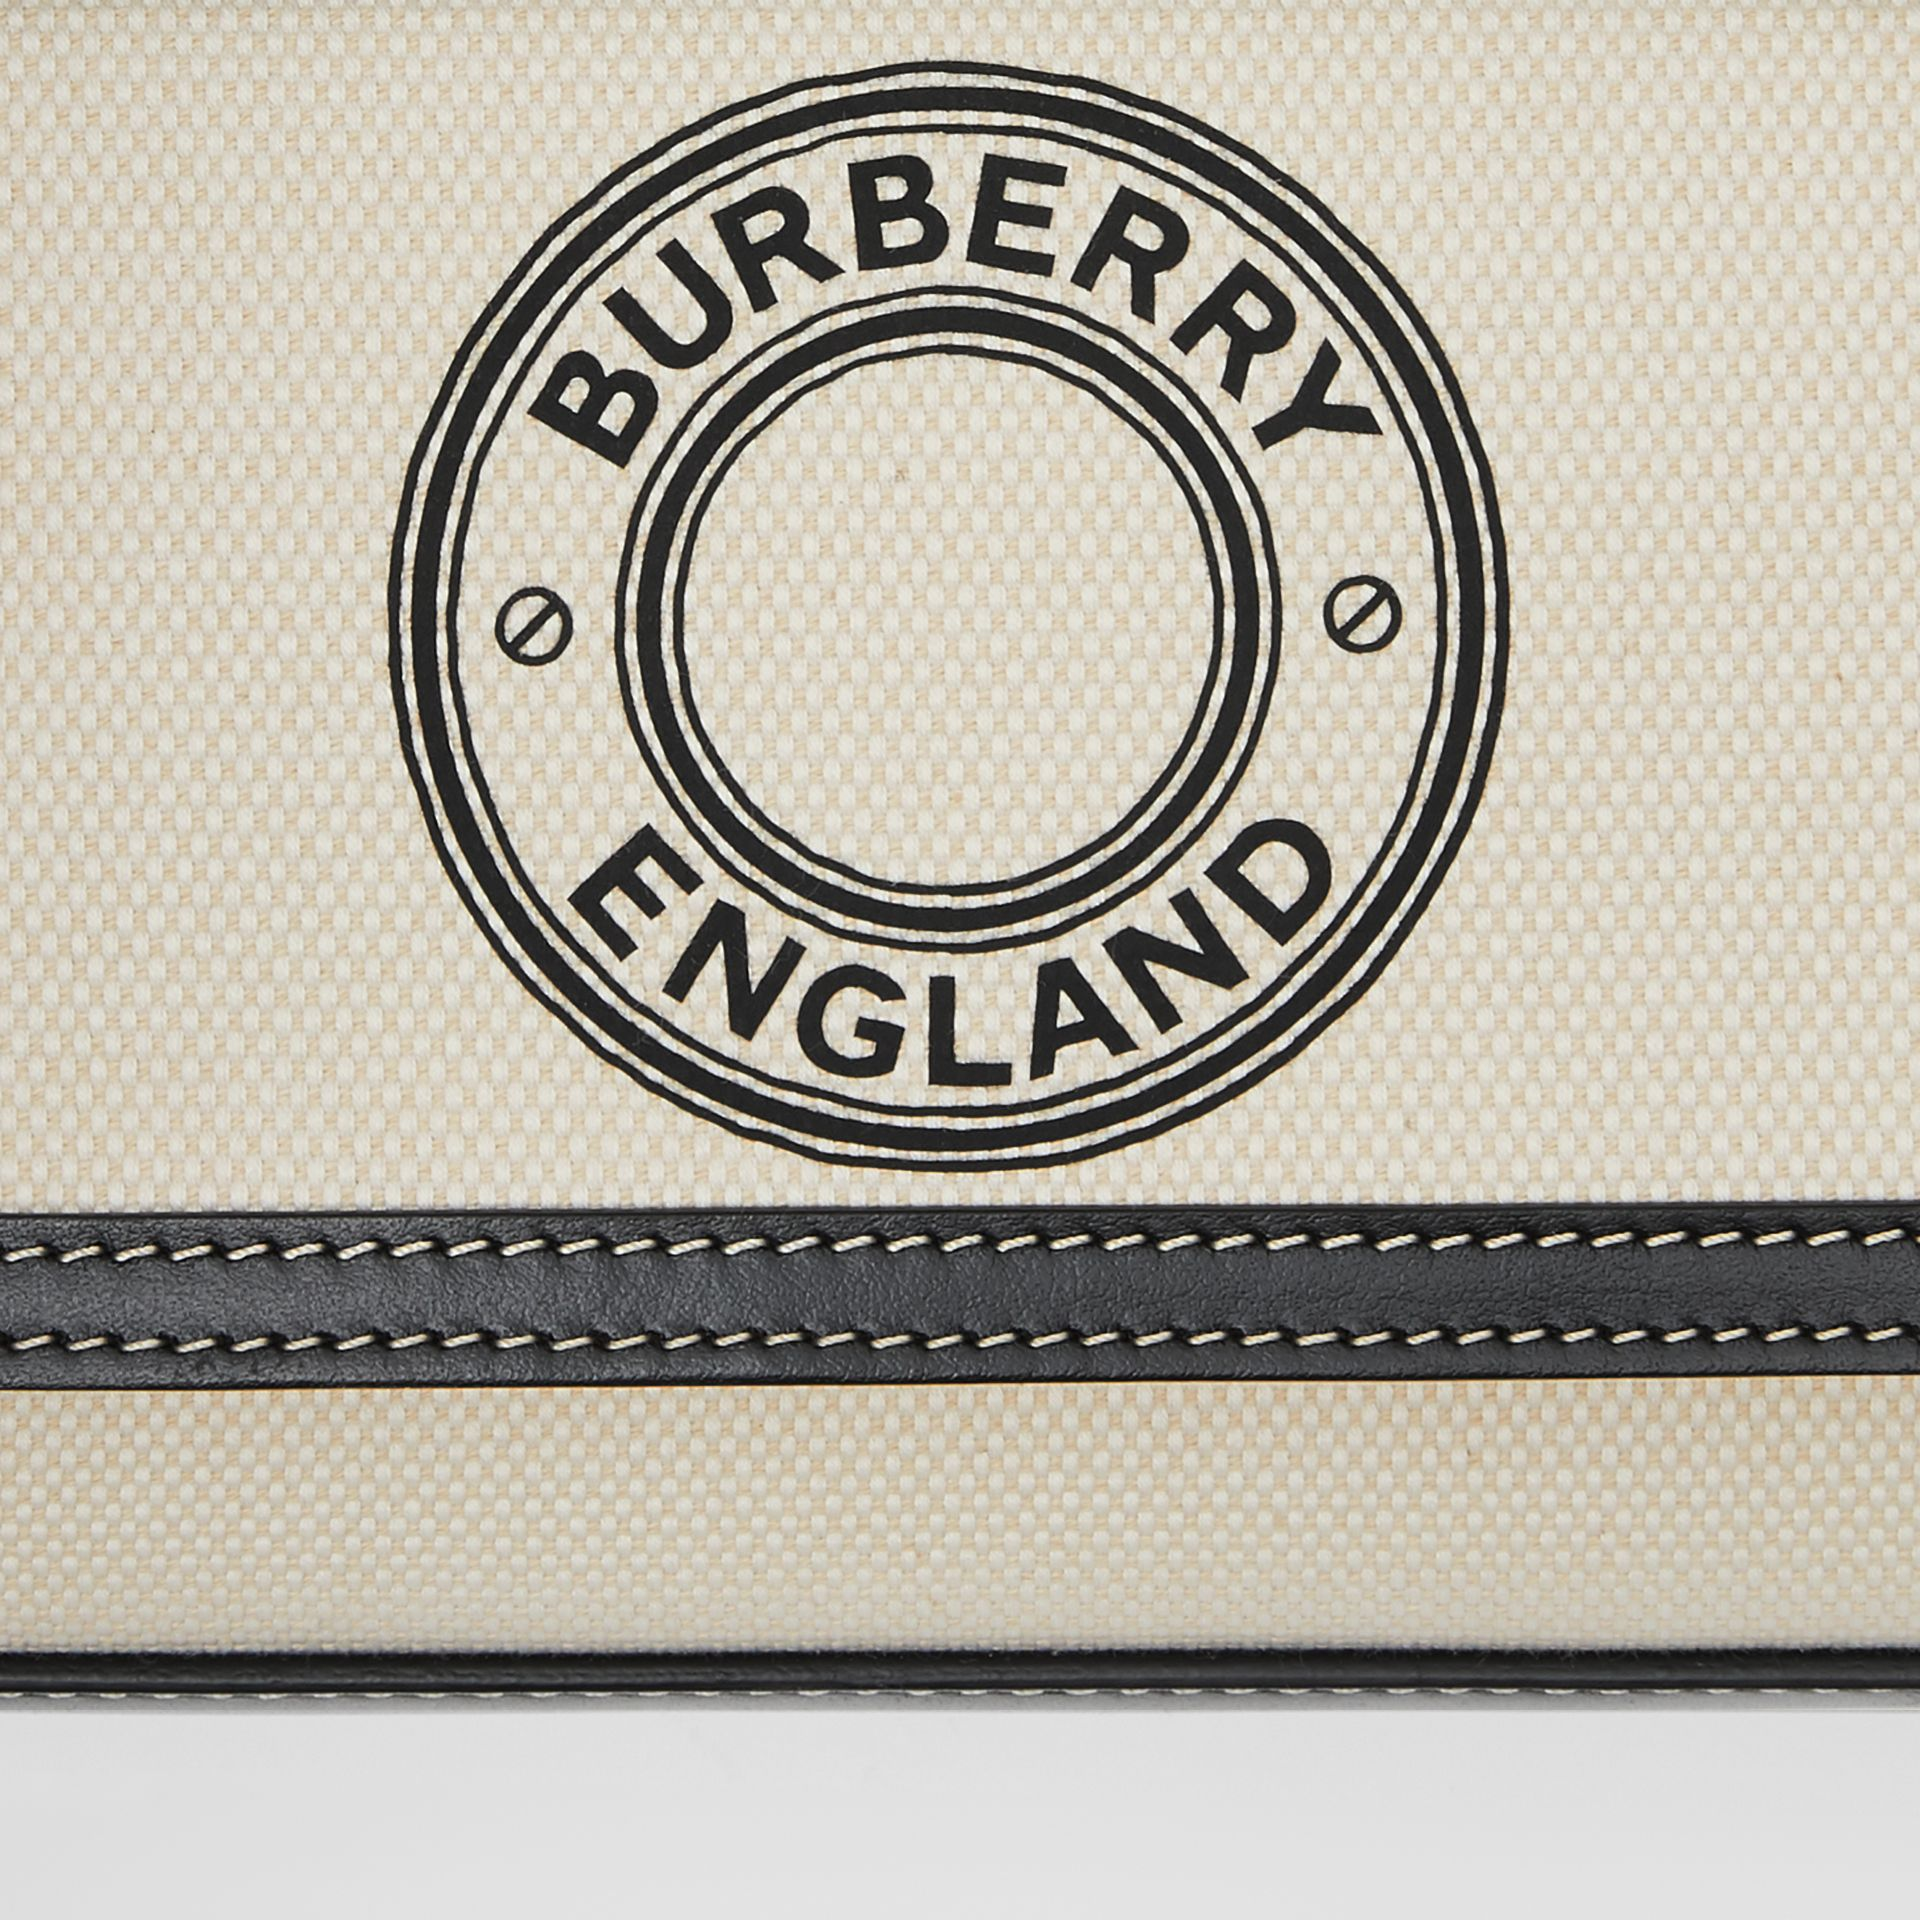 Borsa Pocket mini in tela e pelle con grafica e logo (Naturale/nero) - Donna | Burberry - immagine della galleria 9